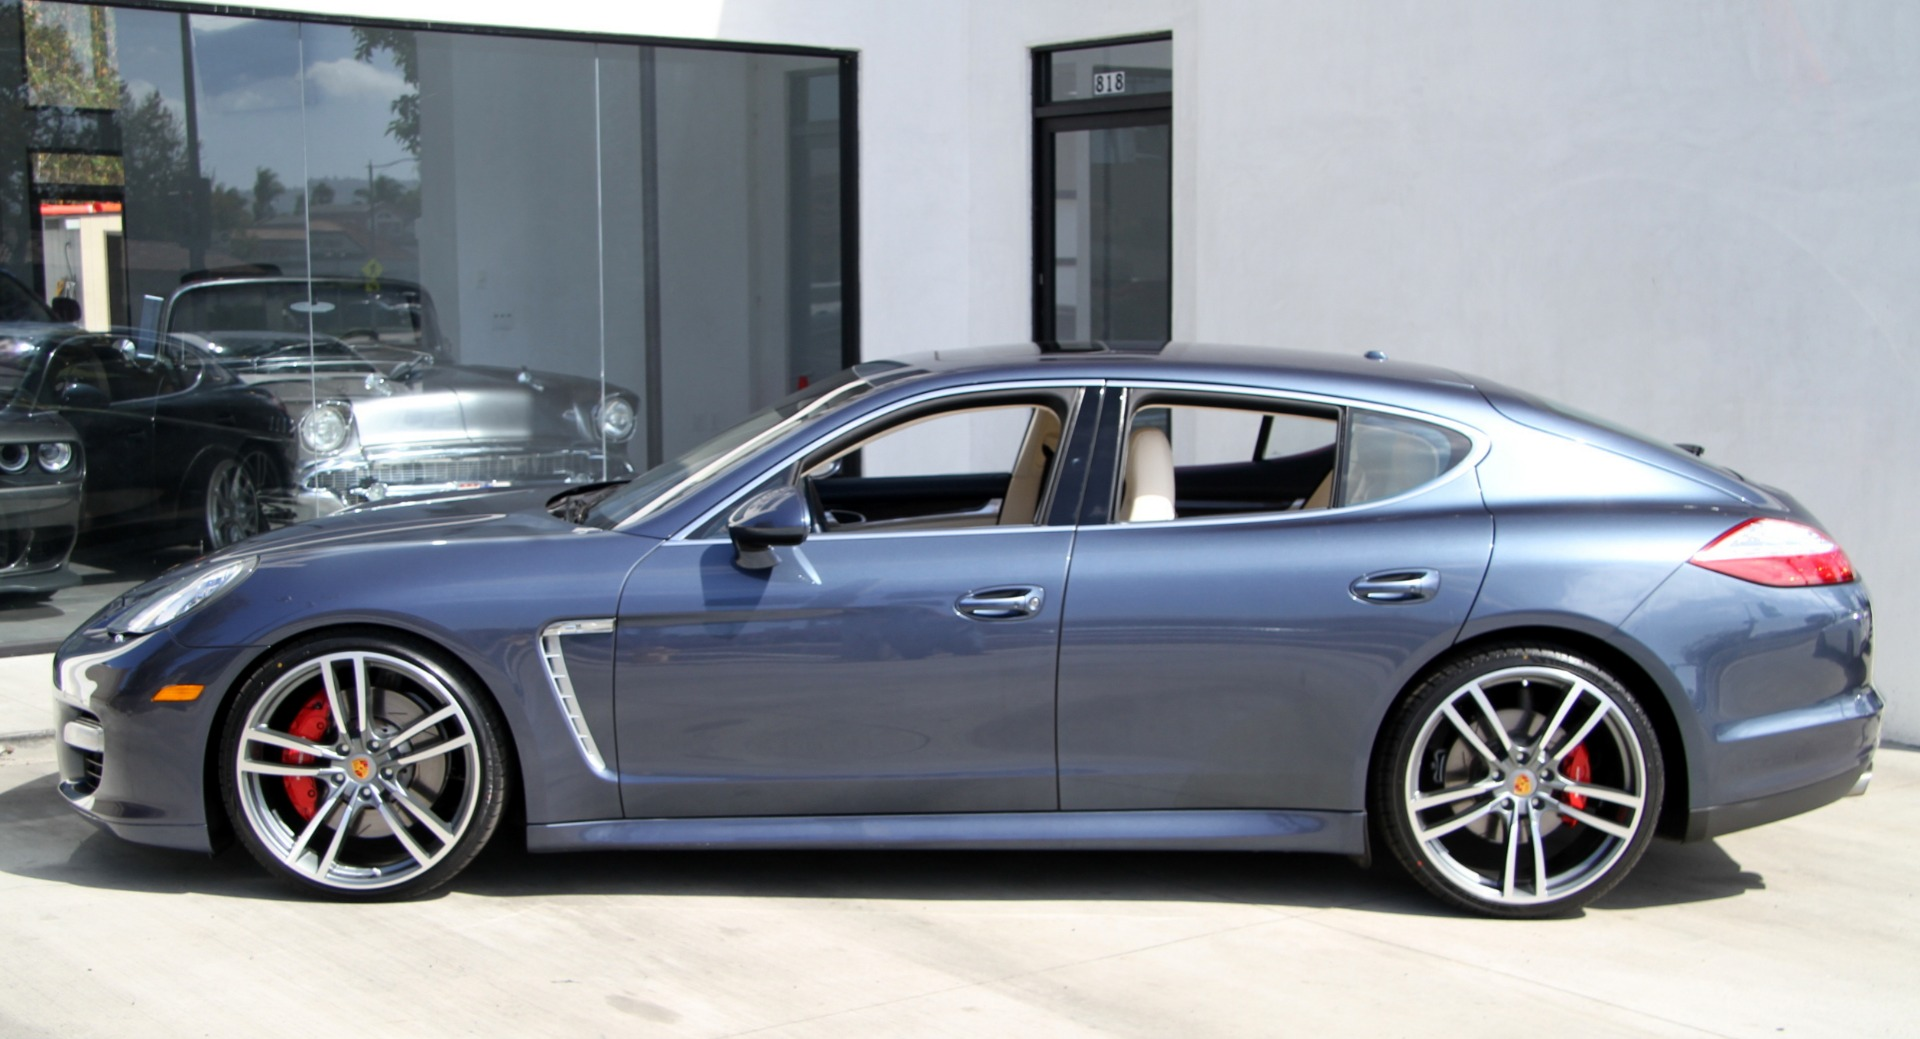 2010 porsche panamera turbo stock 6276 for sale near redondo beach ca ca porsche dealer